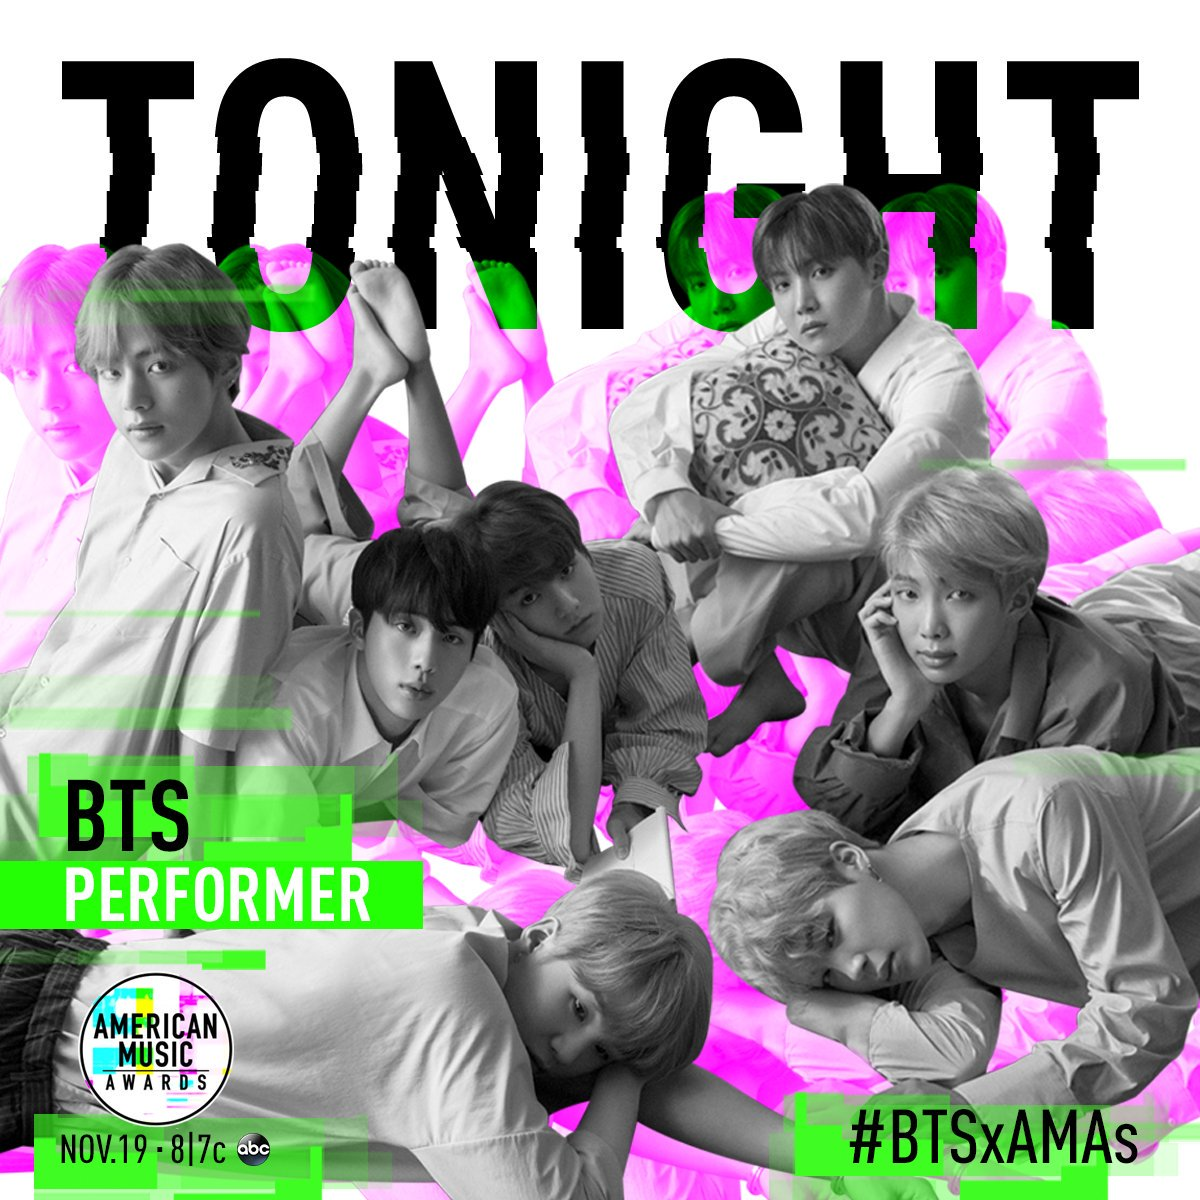 We're SO EXCITED to perform at the @AMAsTONIGHT! It's going to be amazing. LIVE 8/7c on ABC!#BTSxAMAs